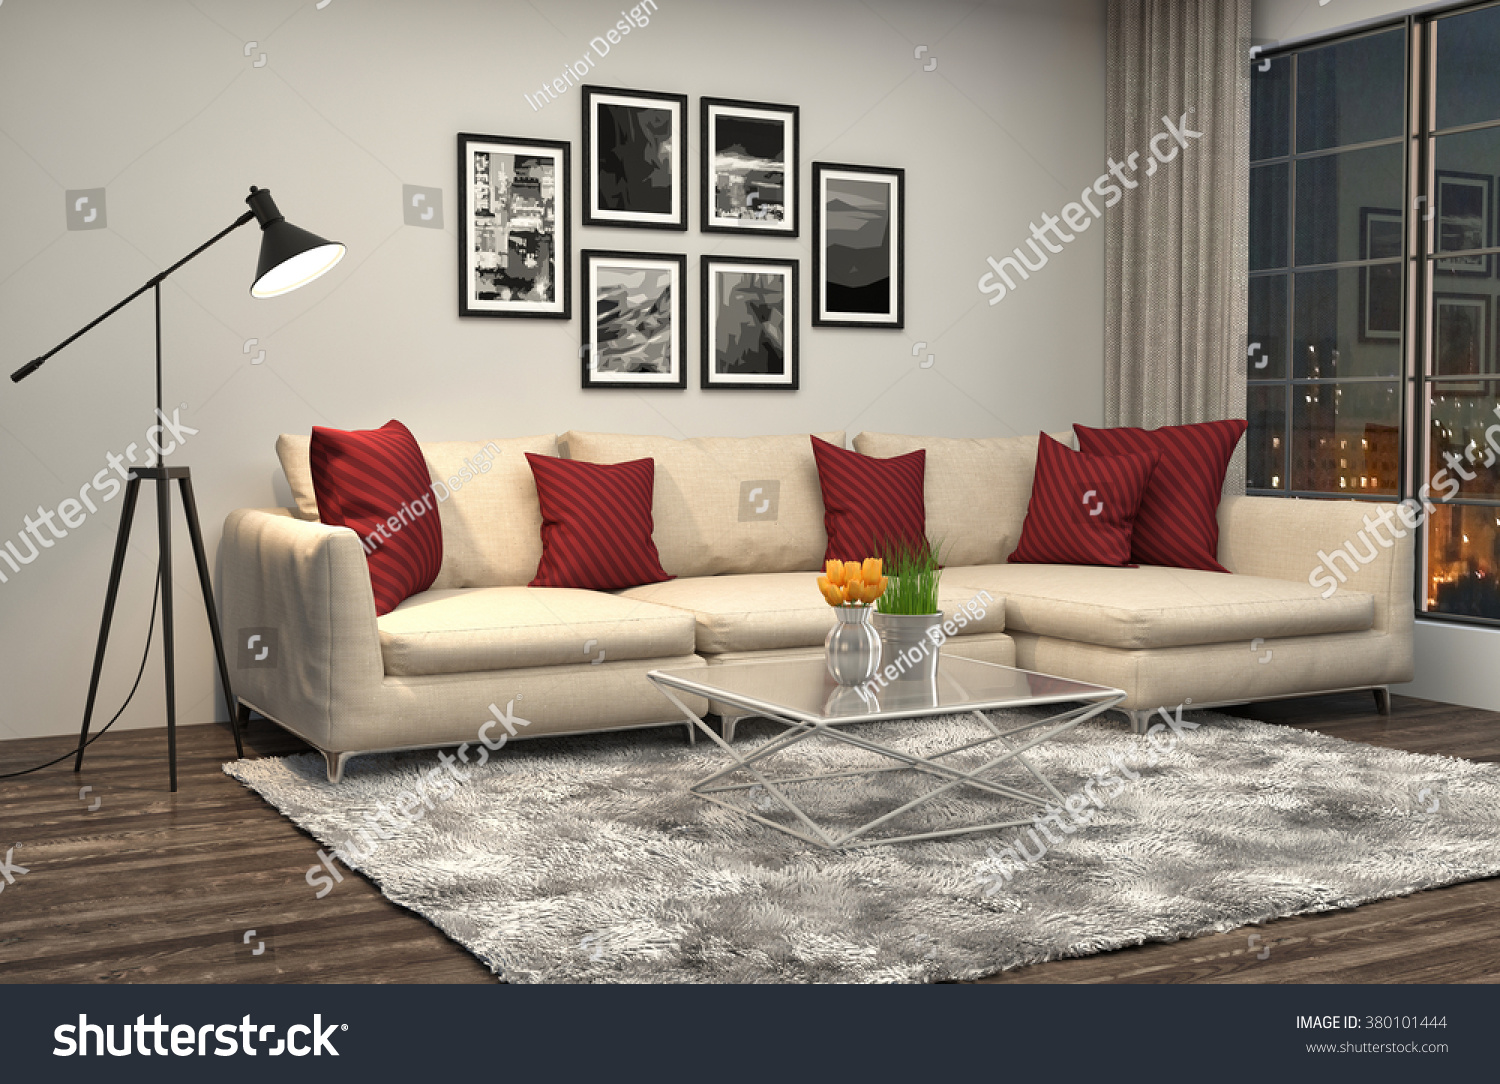 interior with sofa 3D illustration